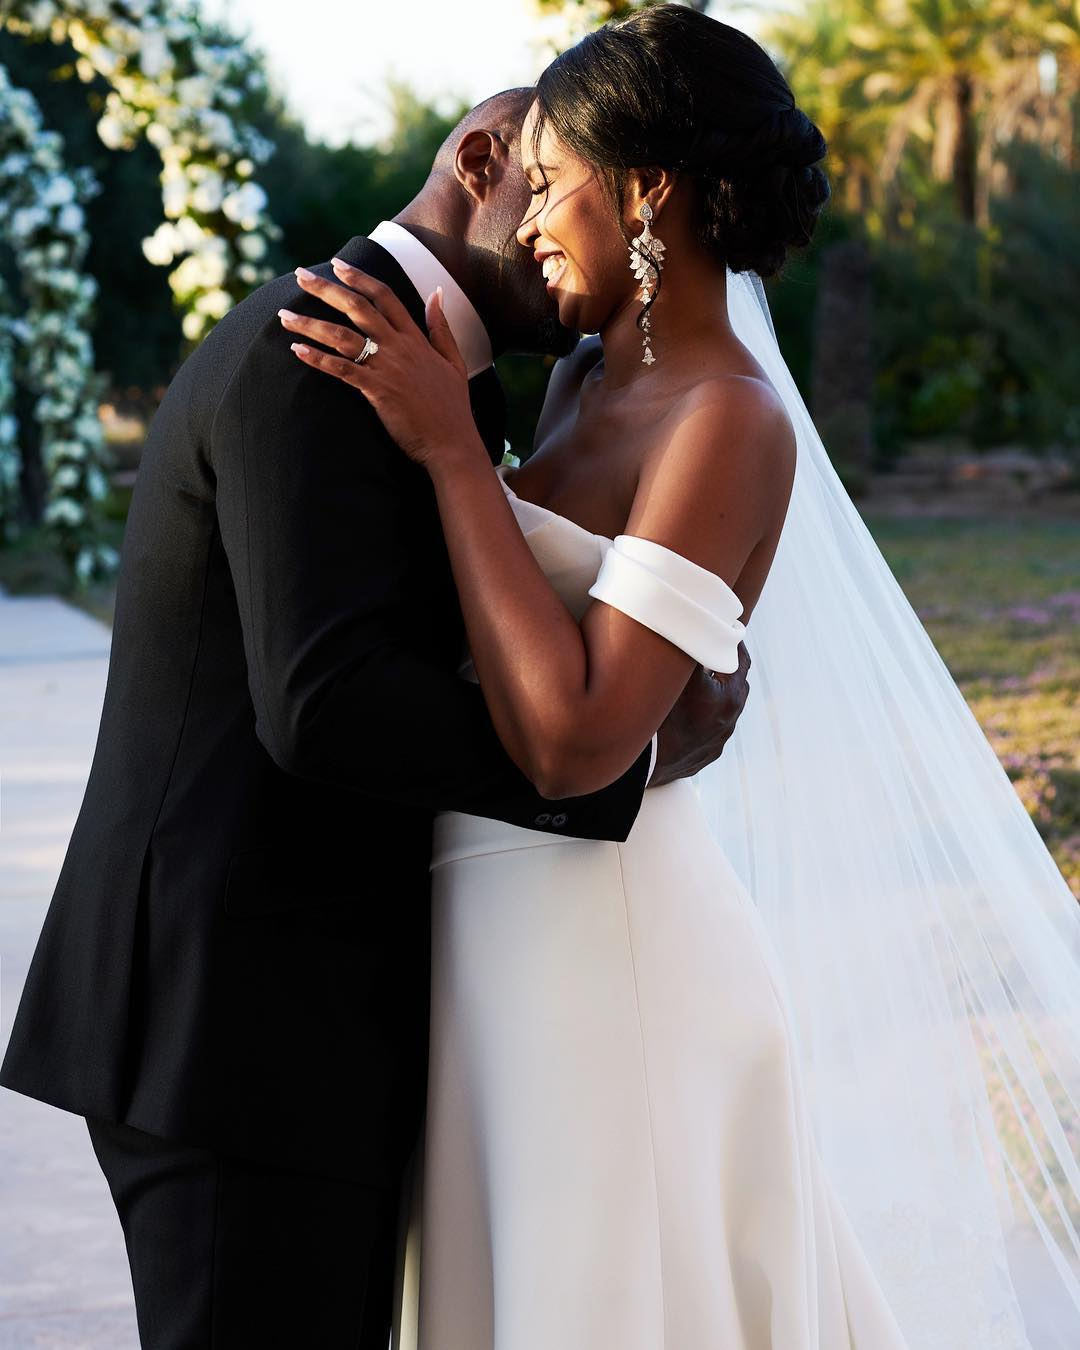 Idris Elba and Sabrina Dhowre Married